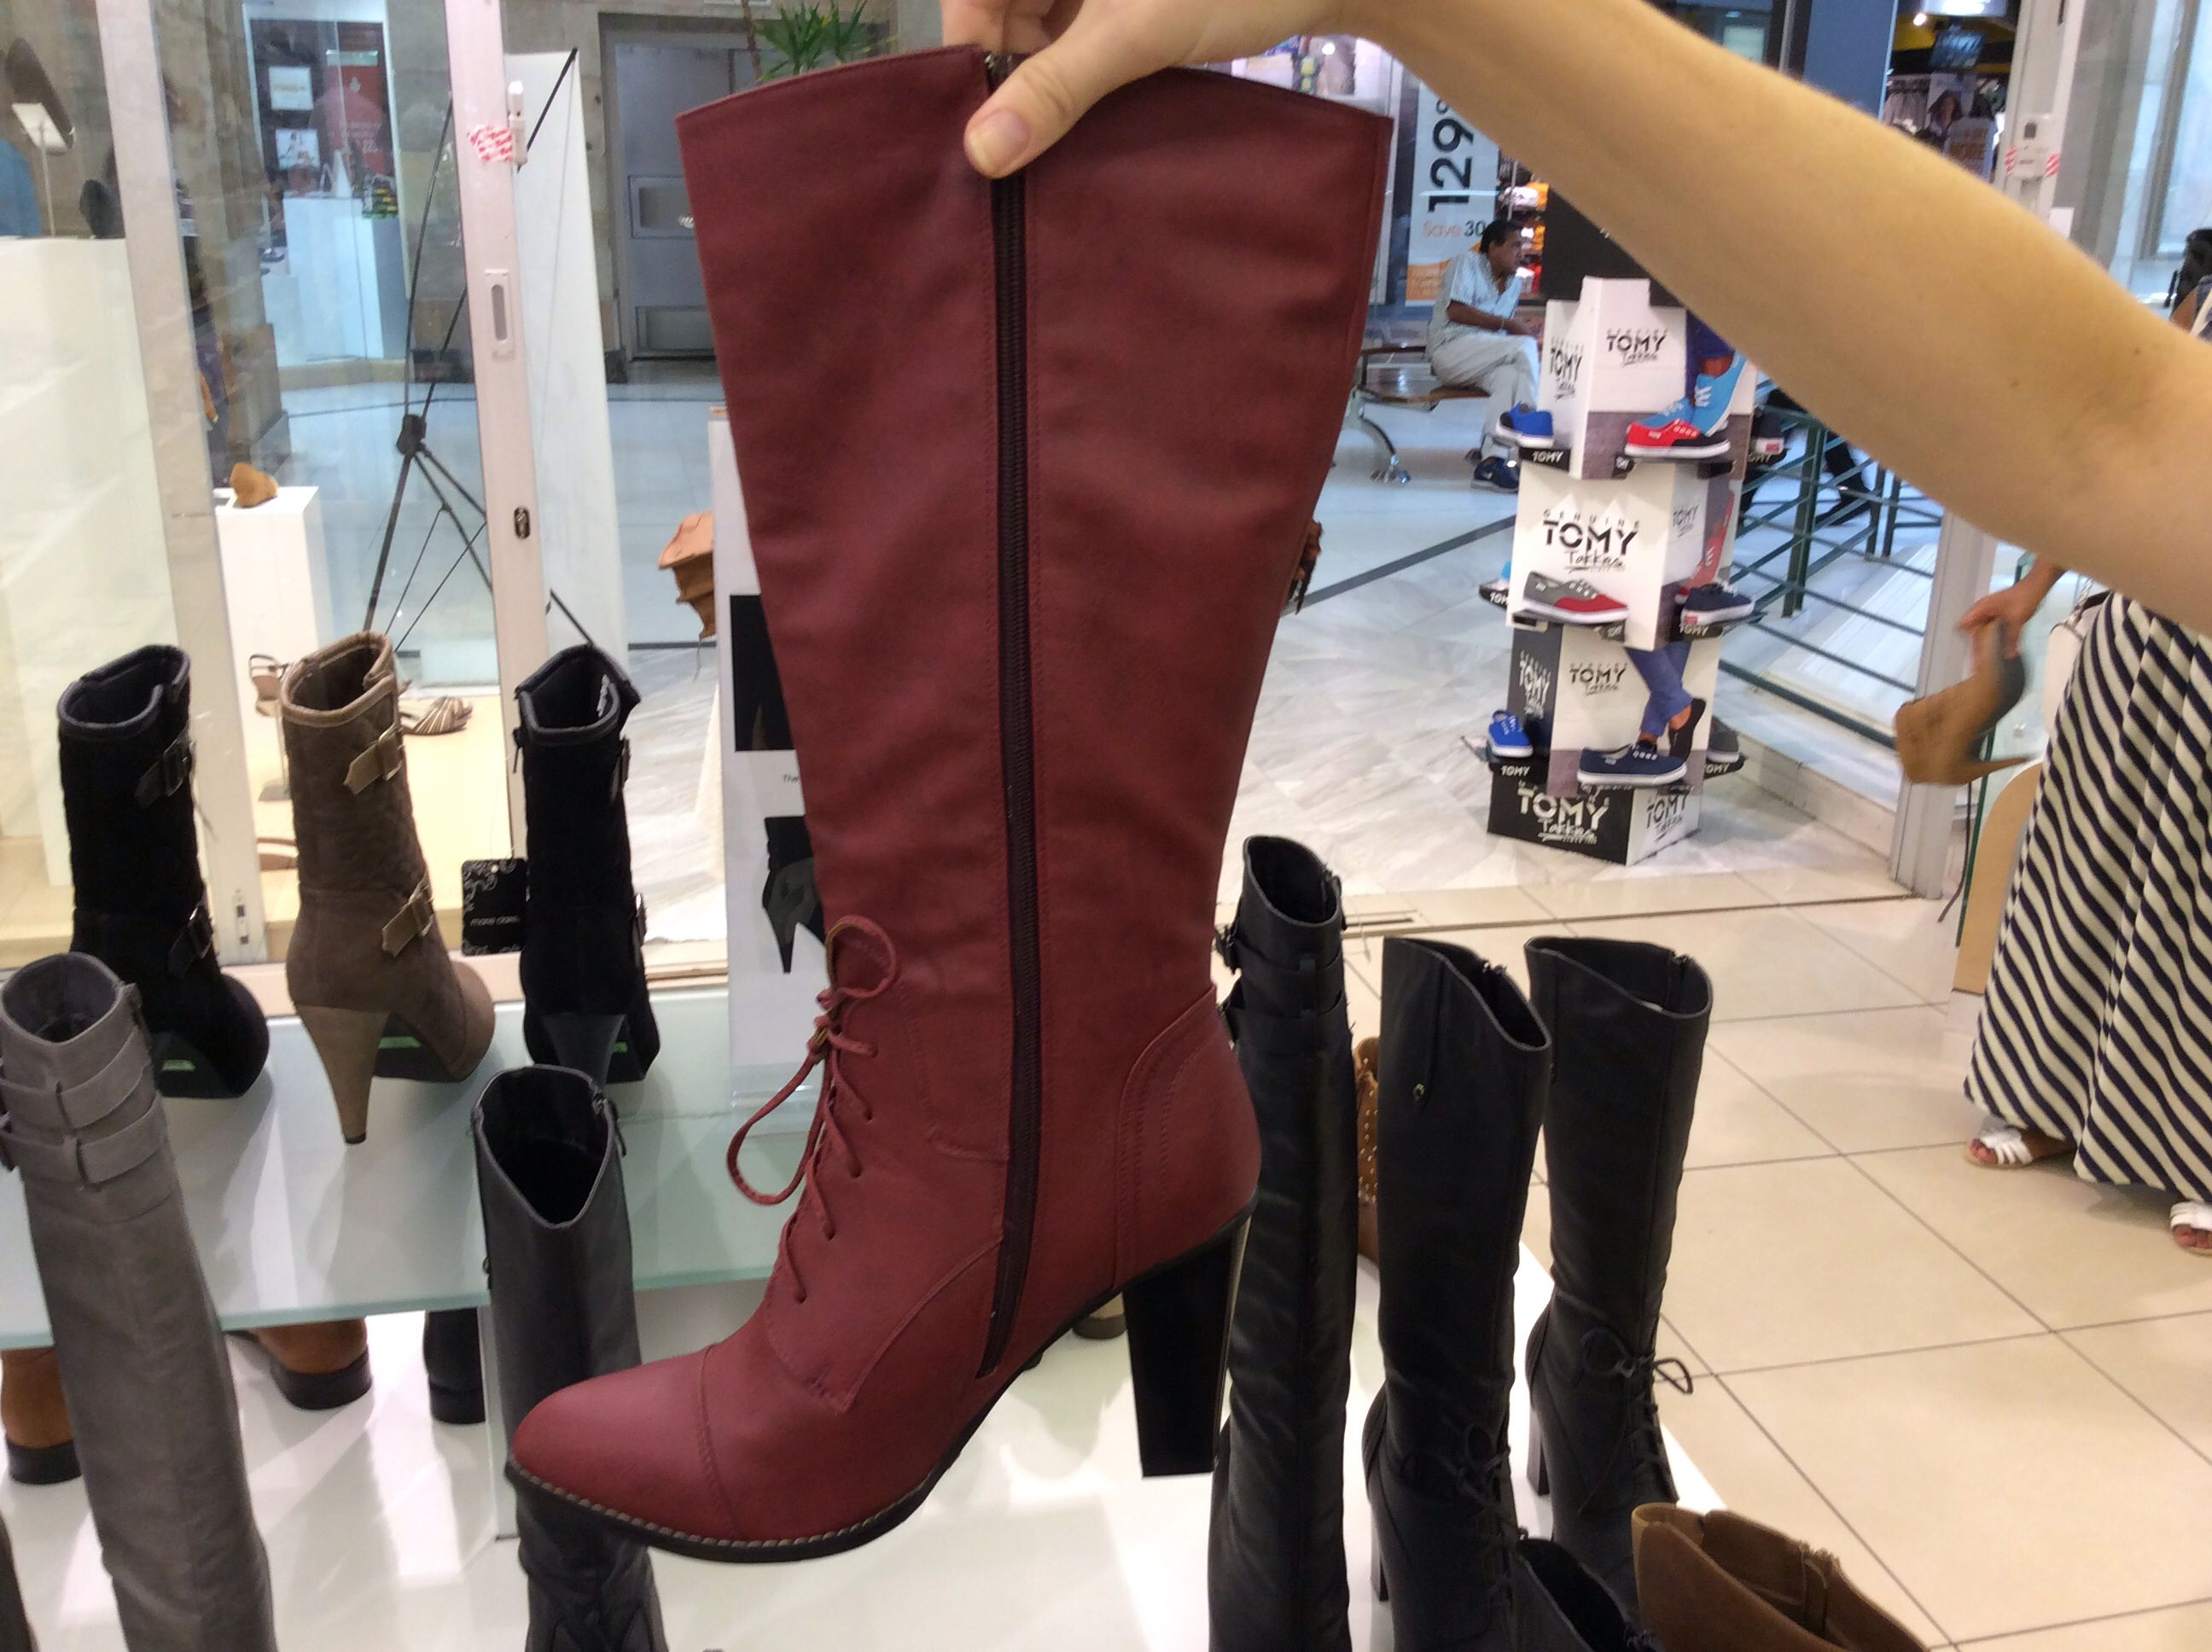 Red shoes wwe Red shoes, Riding boots, Boots